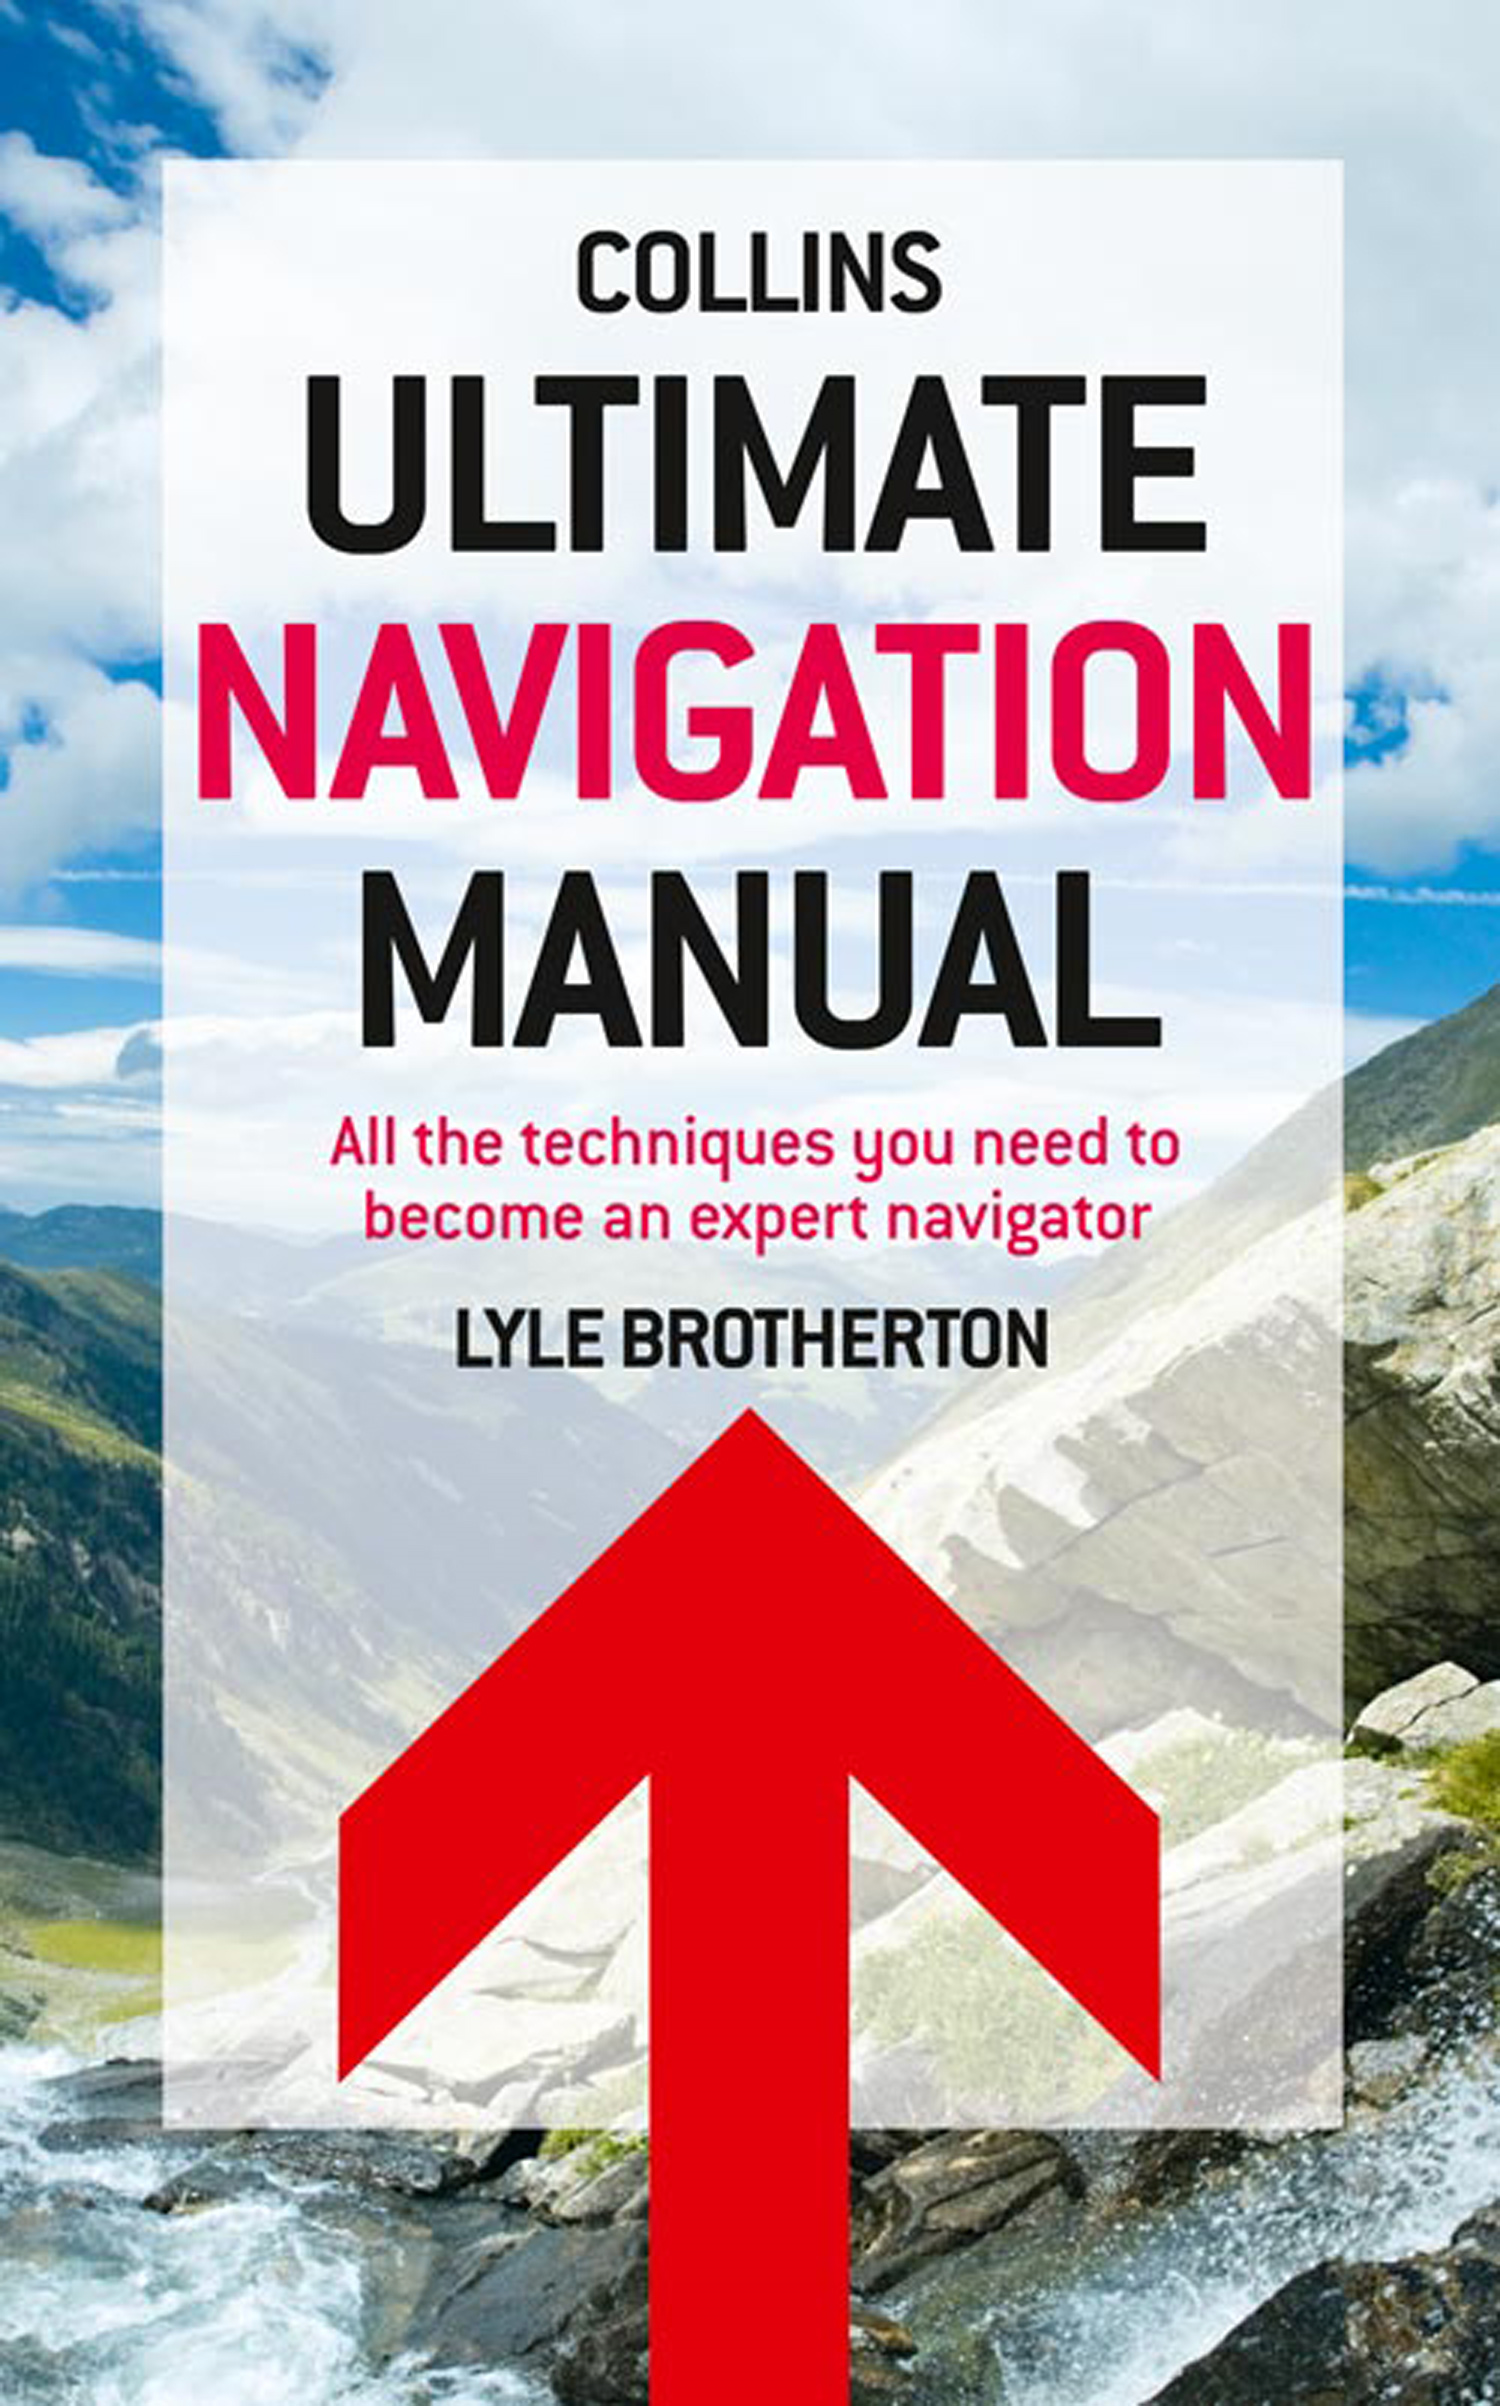 Ultimate Navigation Manual By: Lyle Brotherton